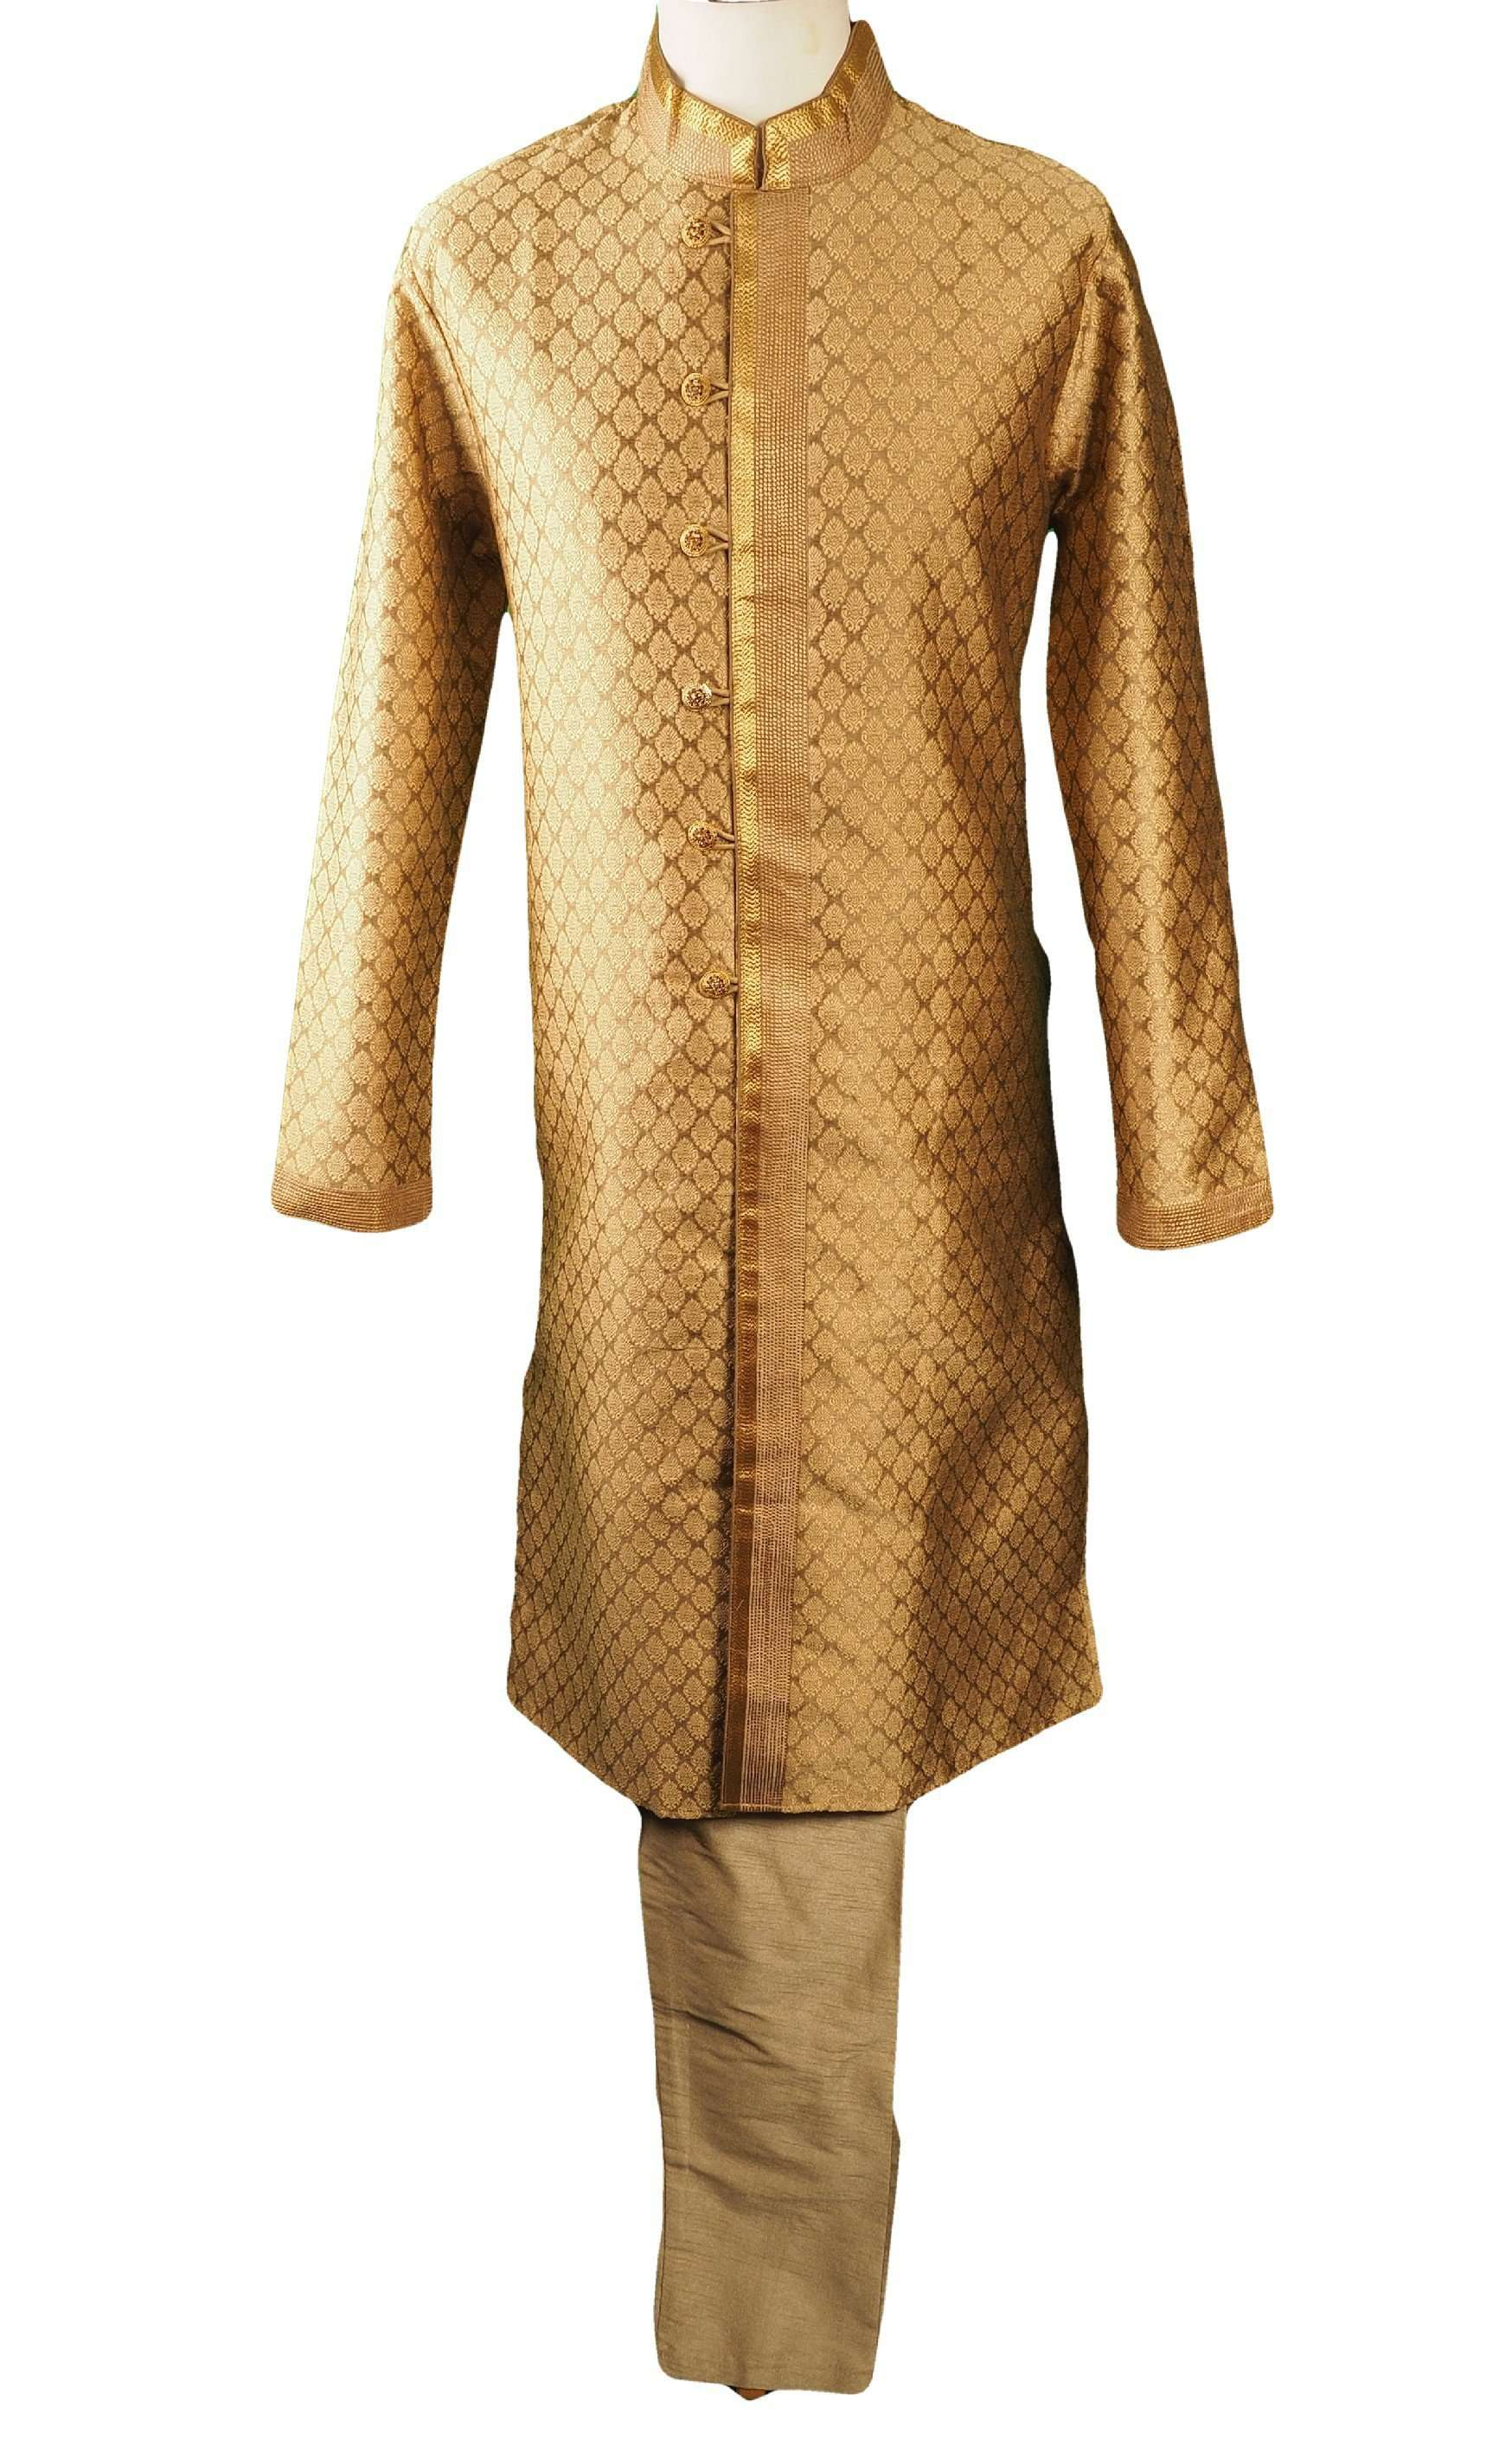 Antique Gold Mens Indian Kurta set for weddings, Bollywood Party ( with Draw stringed trousers) - Logan TY0218 - Prachy Creations